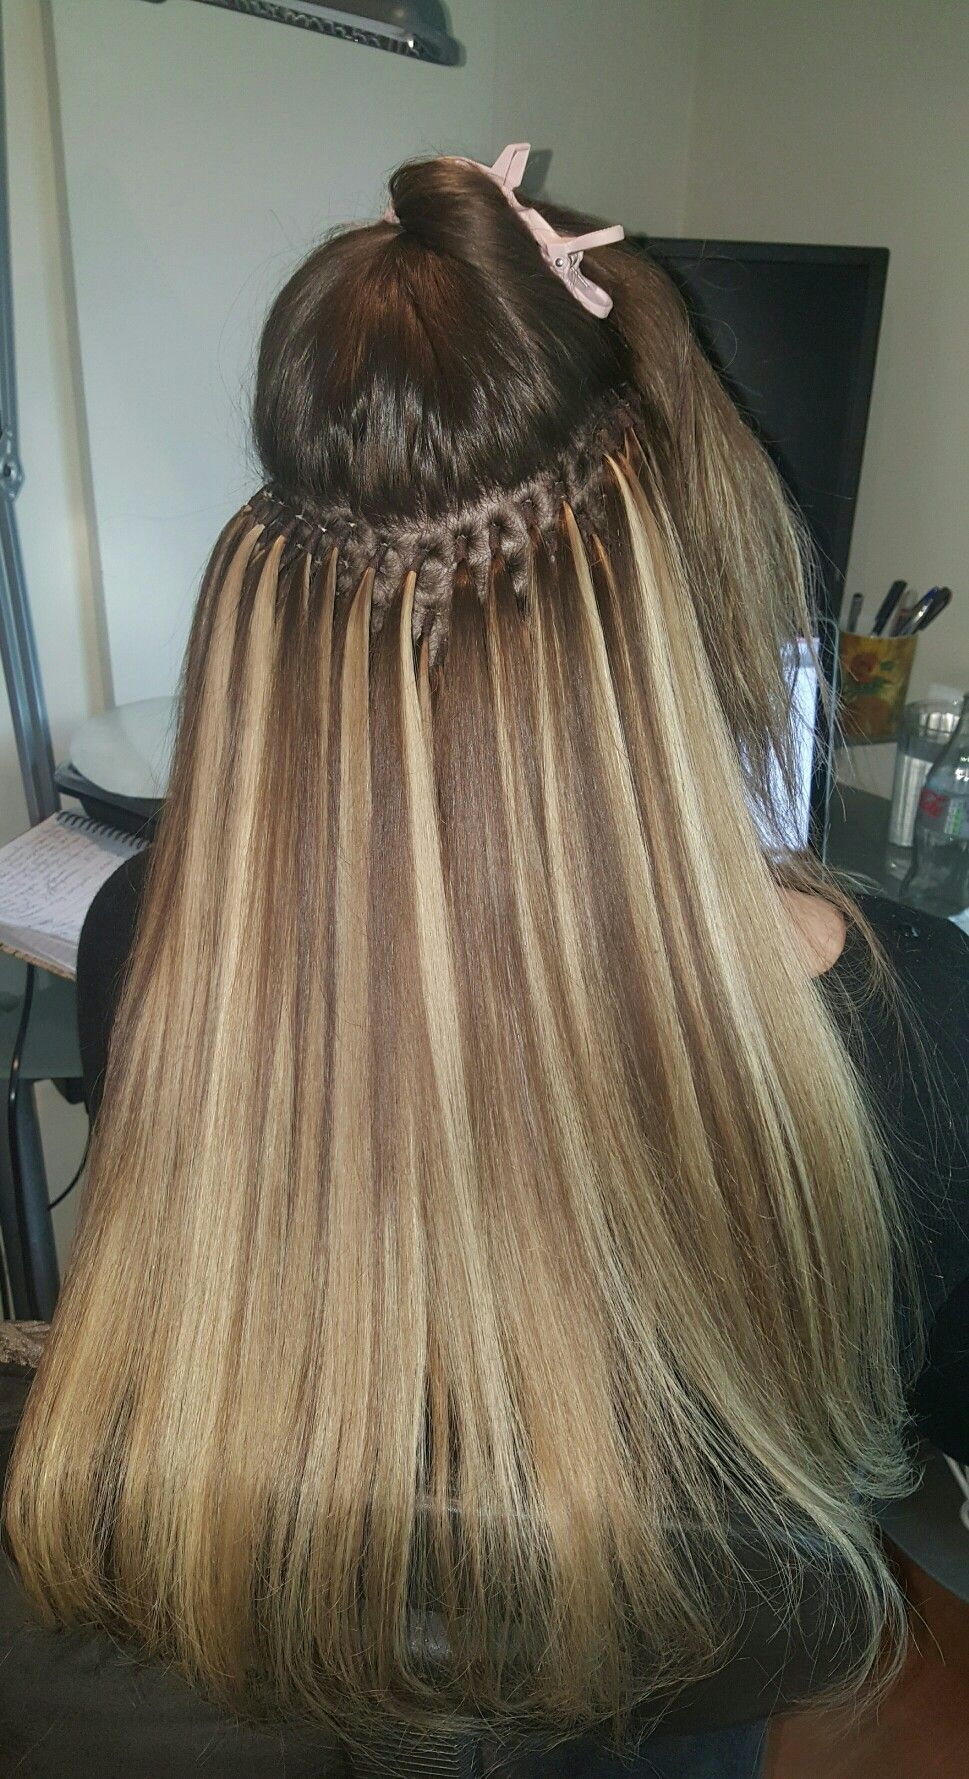 Knots Hair Extensions Method By Geenie Hair No Damage No Pain No